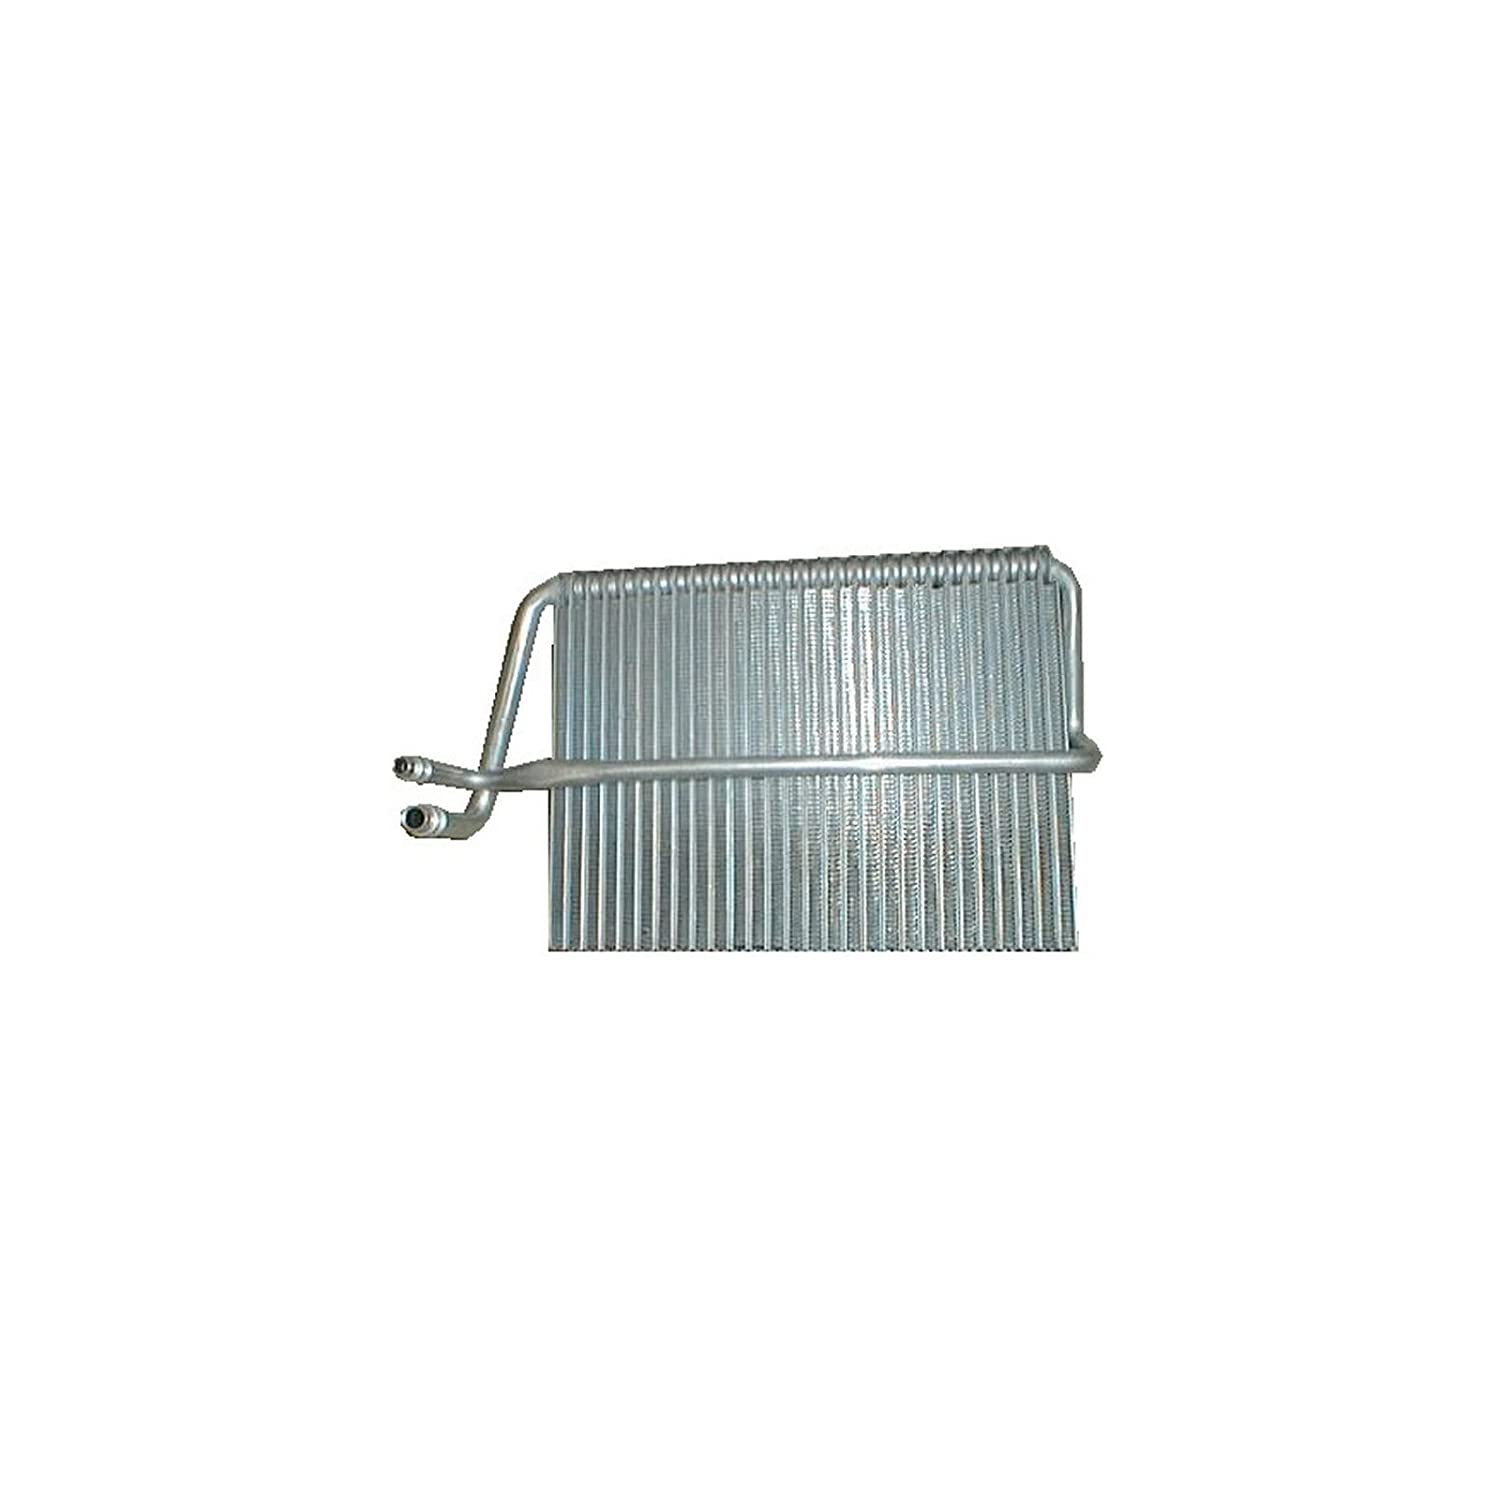 Delphi TSP0525086 Air Conditioning Component